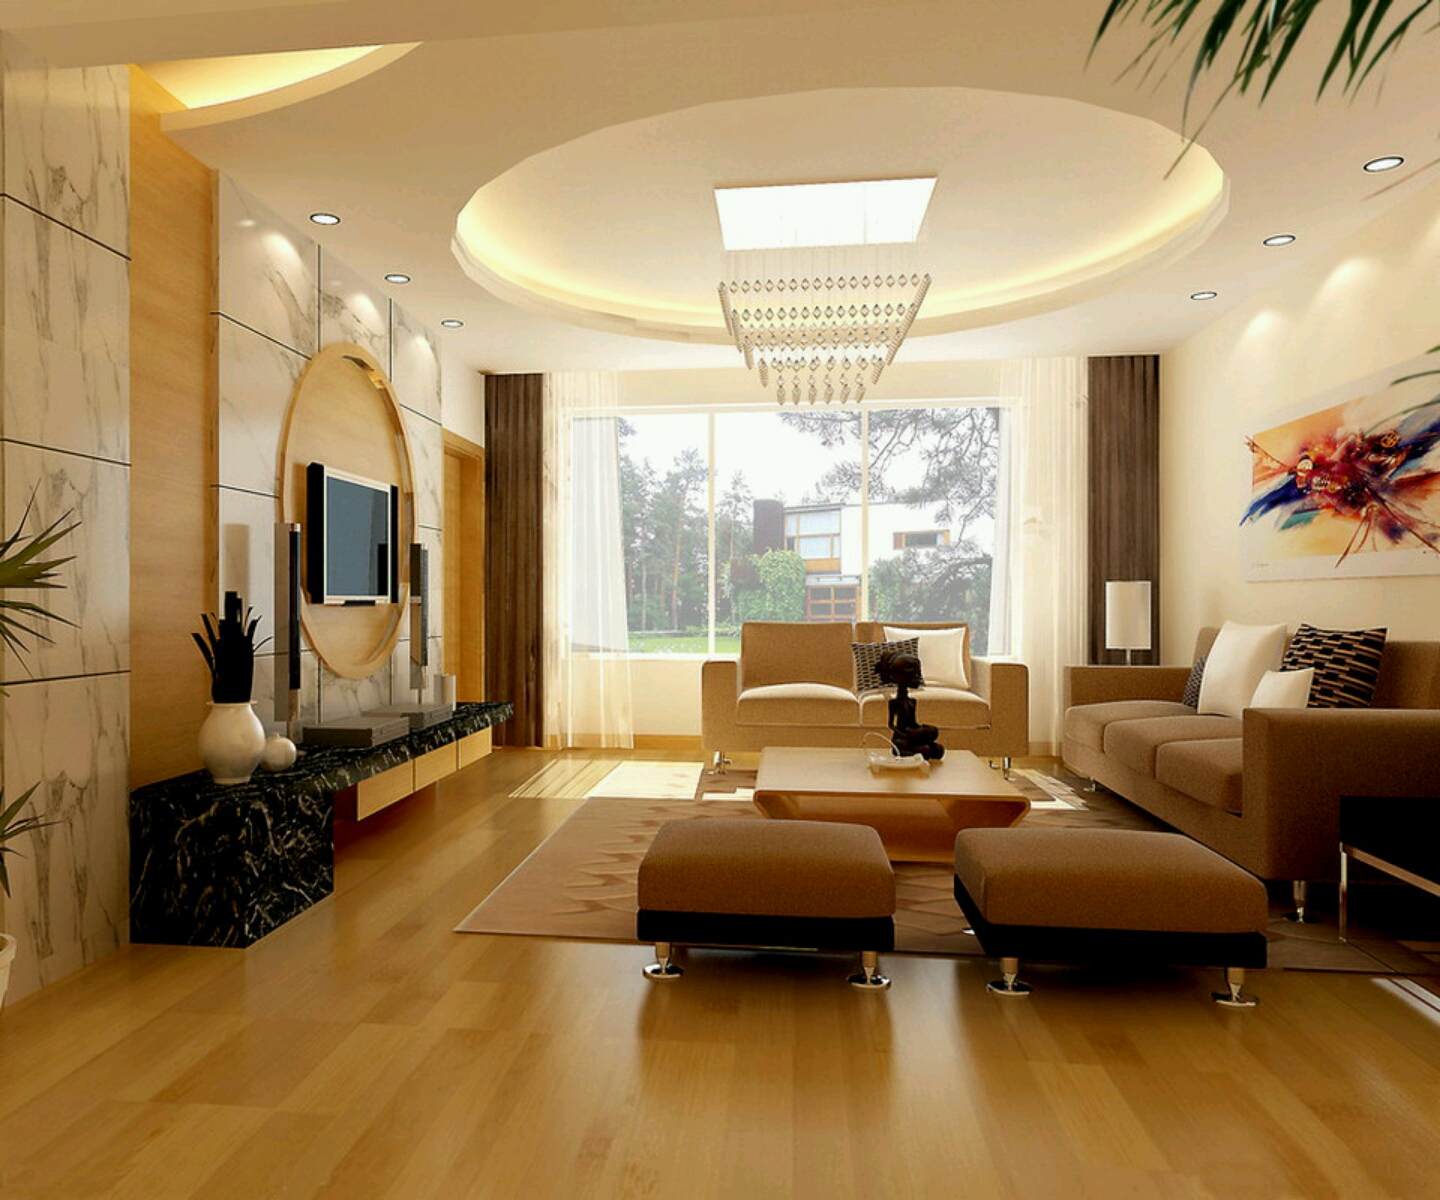 Modern interior decoration living rooms ceiling designs for 2010 modern living room designs